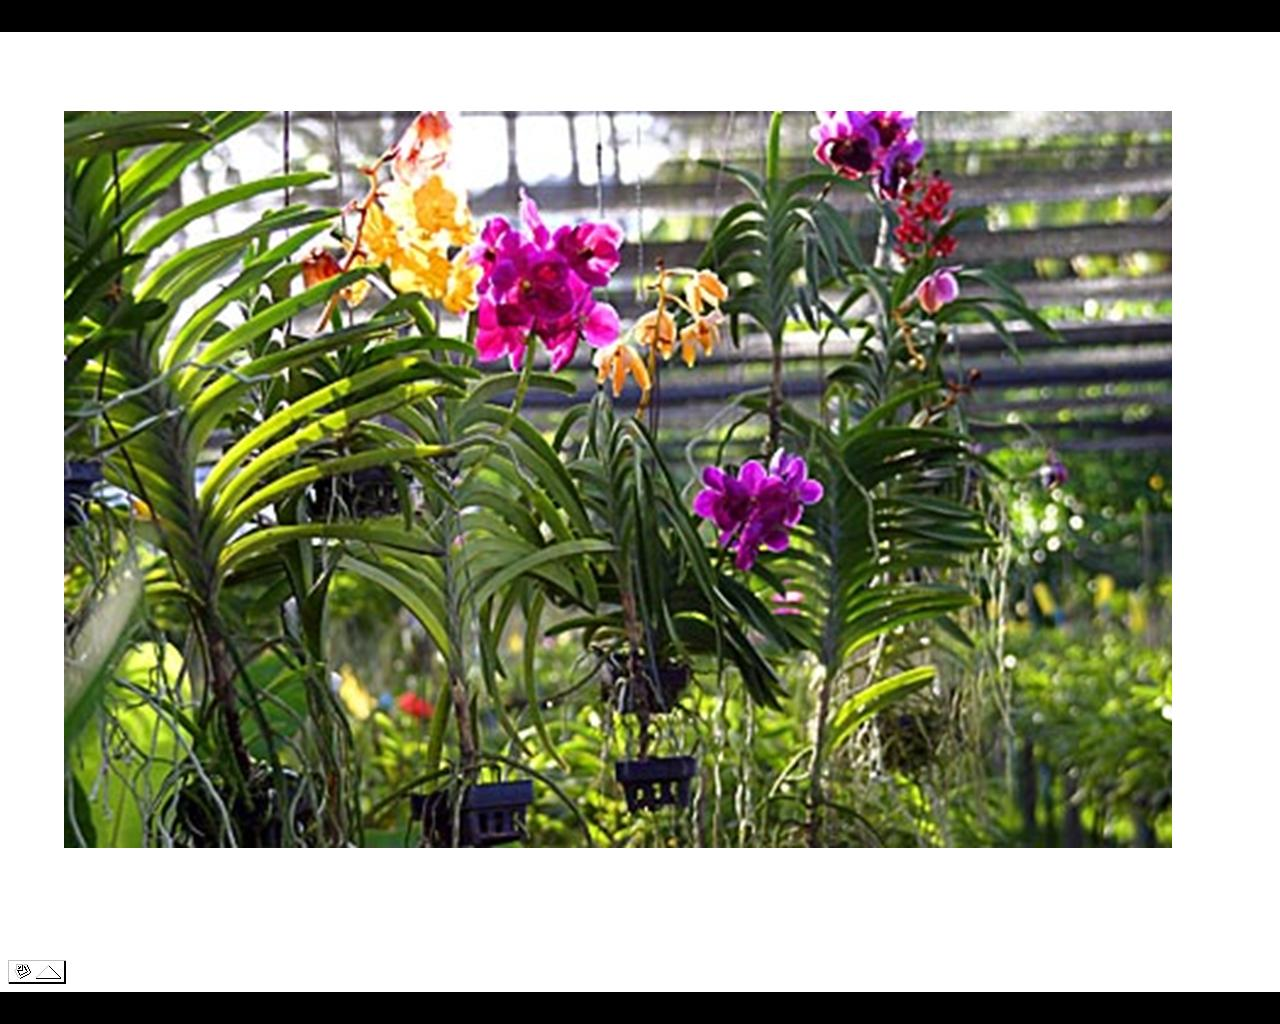 Flowers of bangladesh orchid flower exotic and refined appearance making them a sophisticated floral gift for any occasion the intricate beauty of the orchids symbolize a wide variety buycottarizona